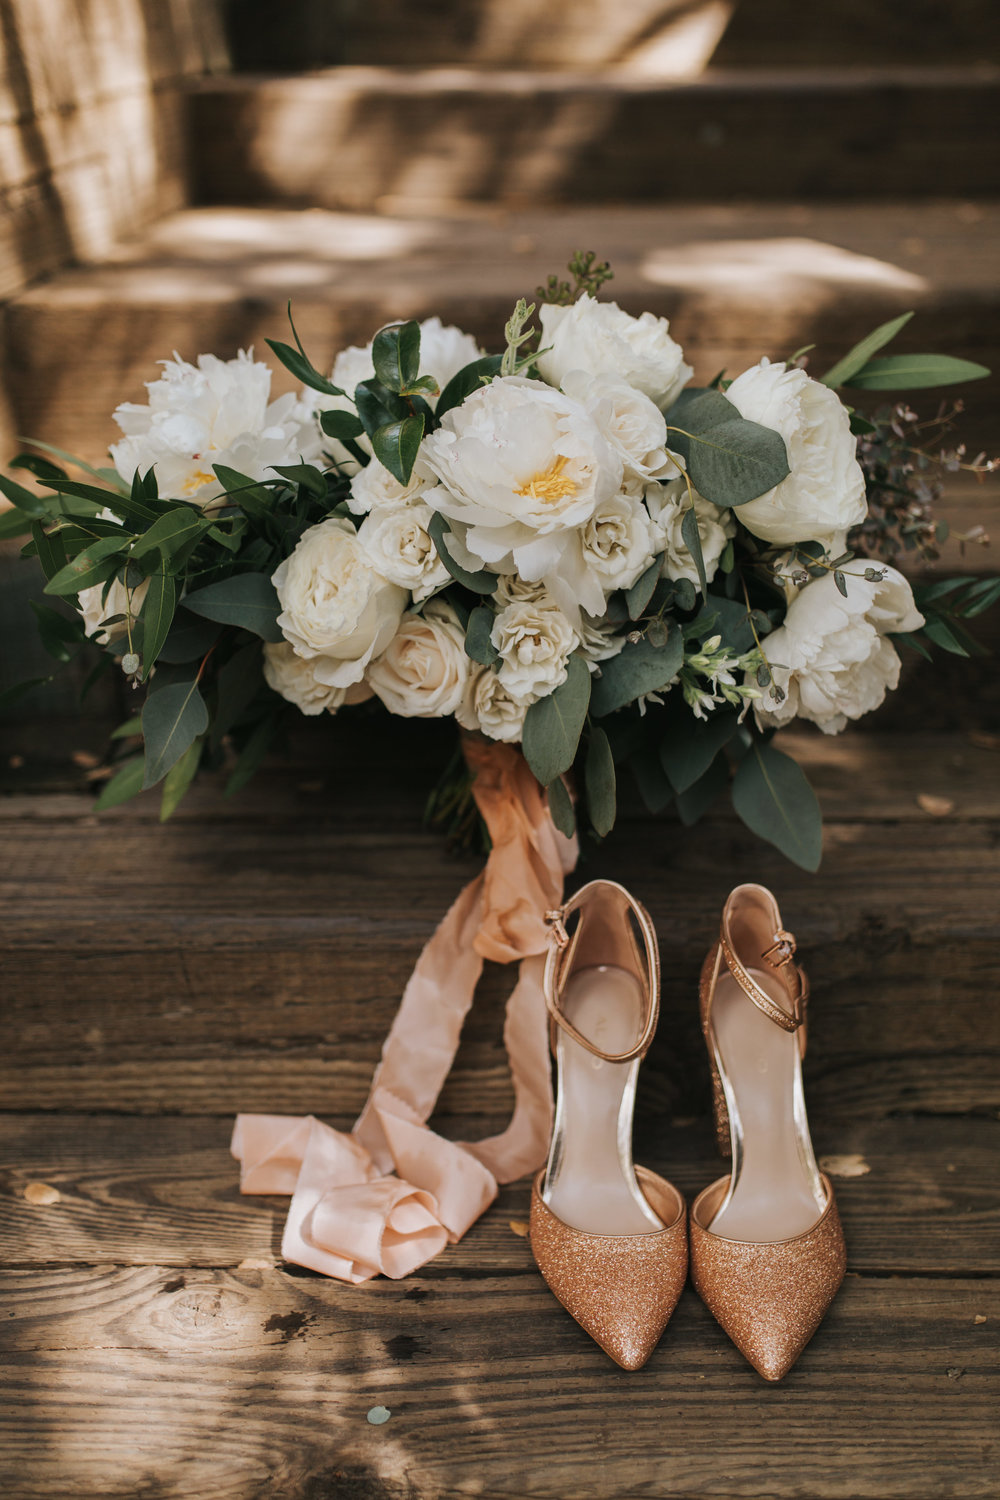 The 1909, The 1909 Wedding, Topanga Canyon Wedding, white peony bridal bouquet, eucalyptus bridal bouquet, peach silk ribbon, blush silk ribbon, blush glitter wedding shoes, white spray rose bouquet